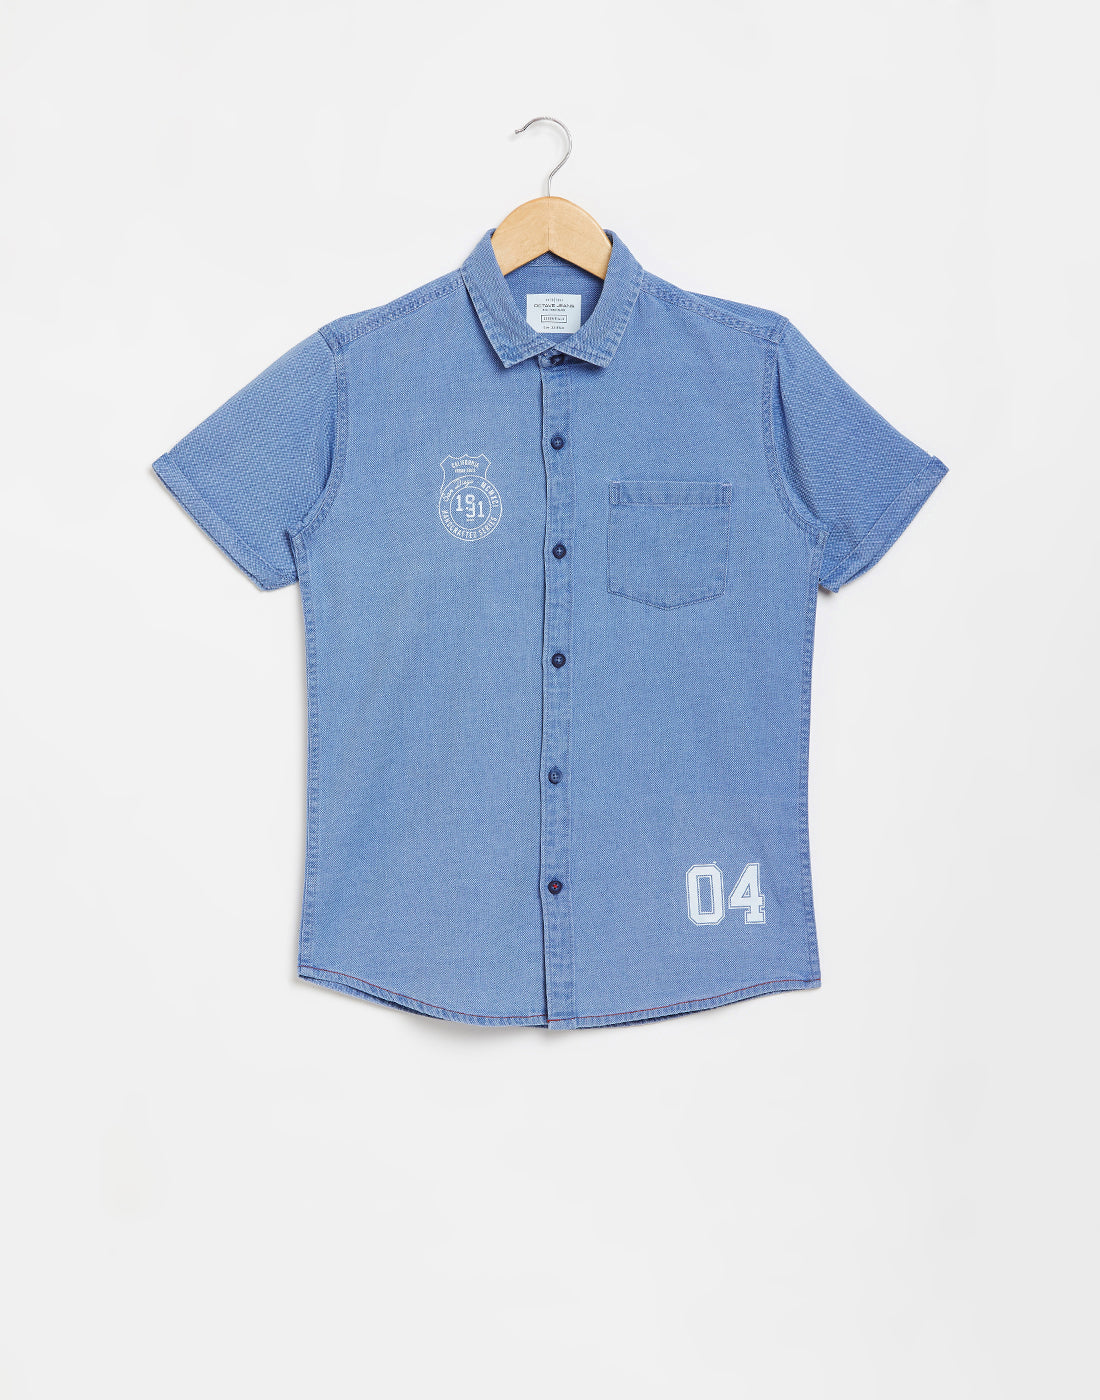 Octave Boys Ice Blue Denim Casual Shirt